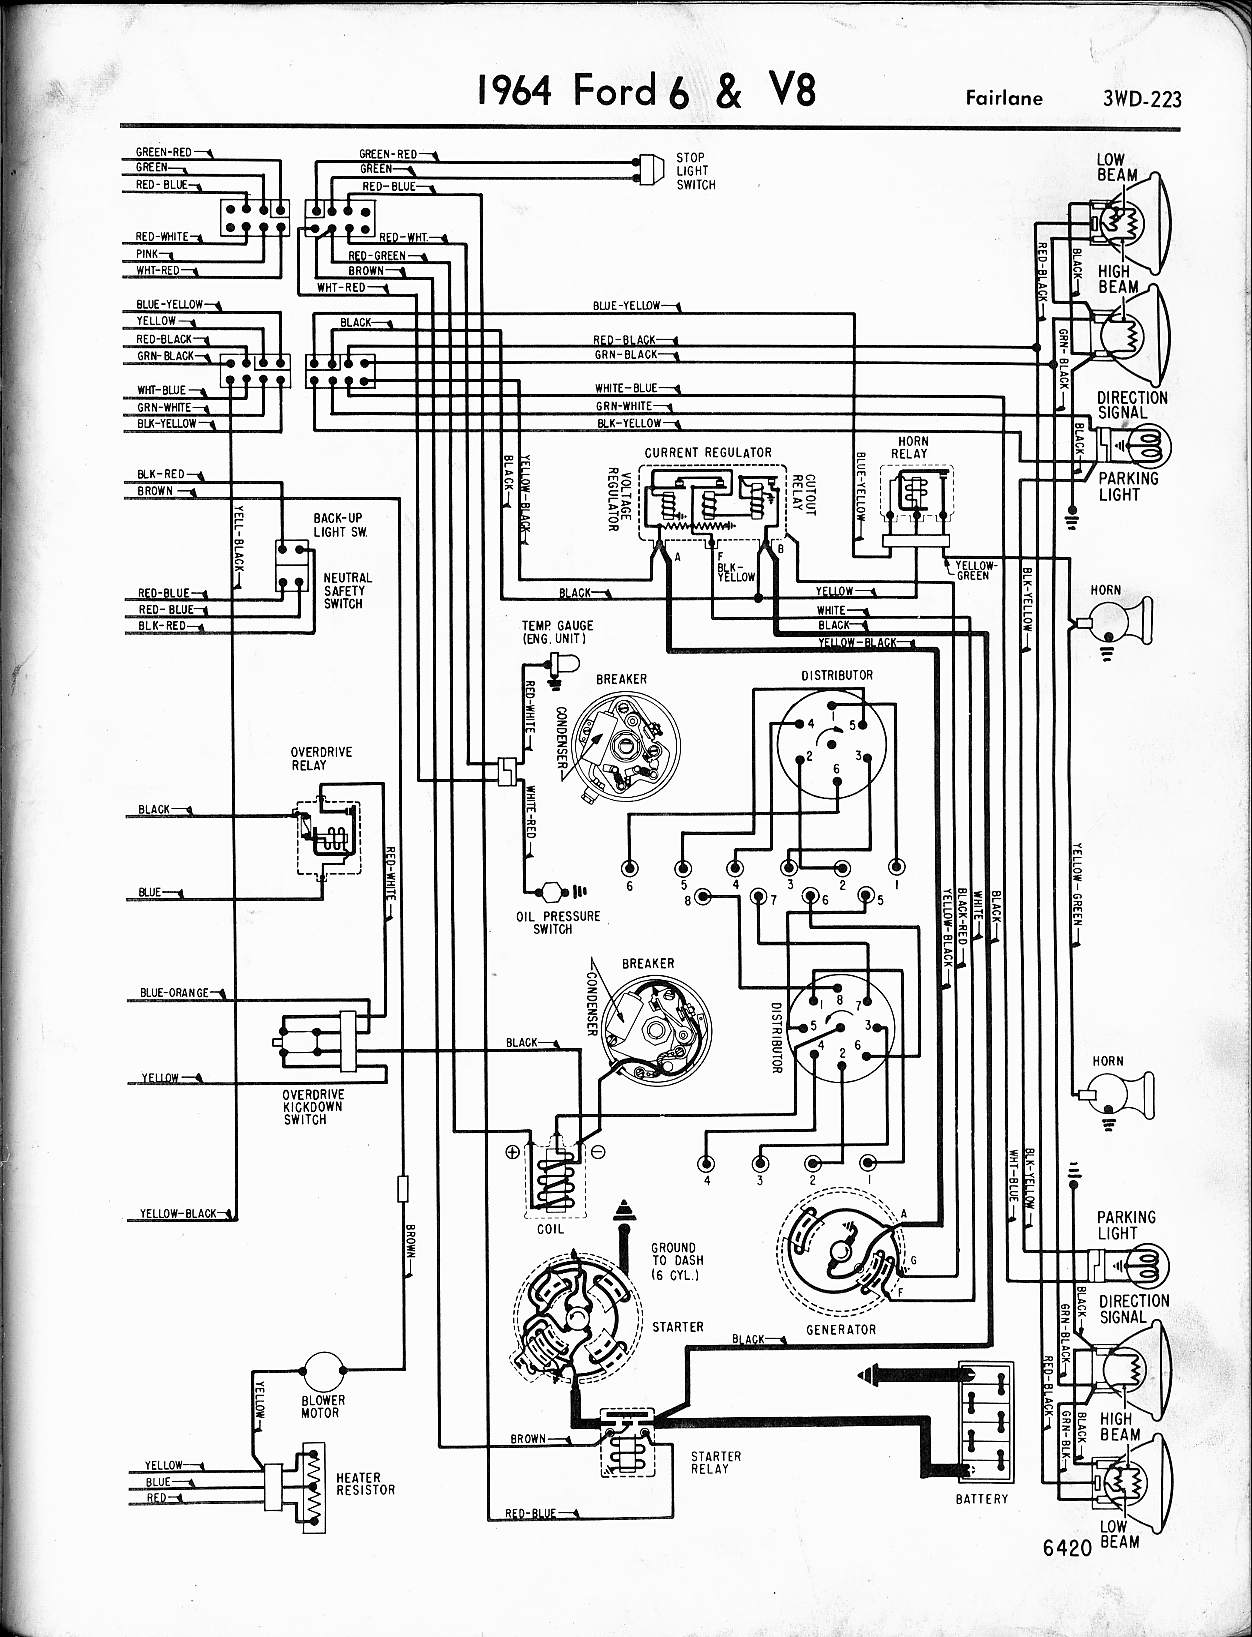 MWire5765 223 57 65 ford wiring diagrams Ford E 350 Wiring Diagrams at couponss.co